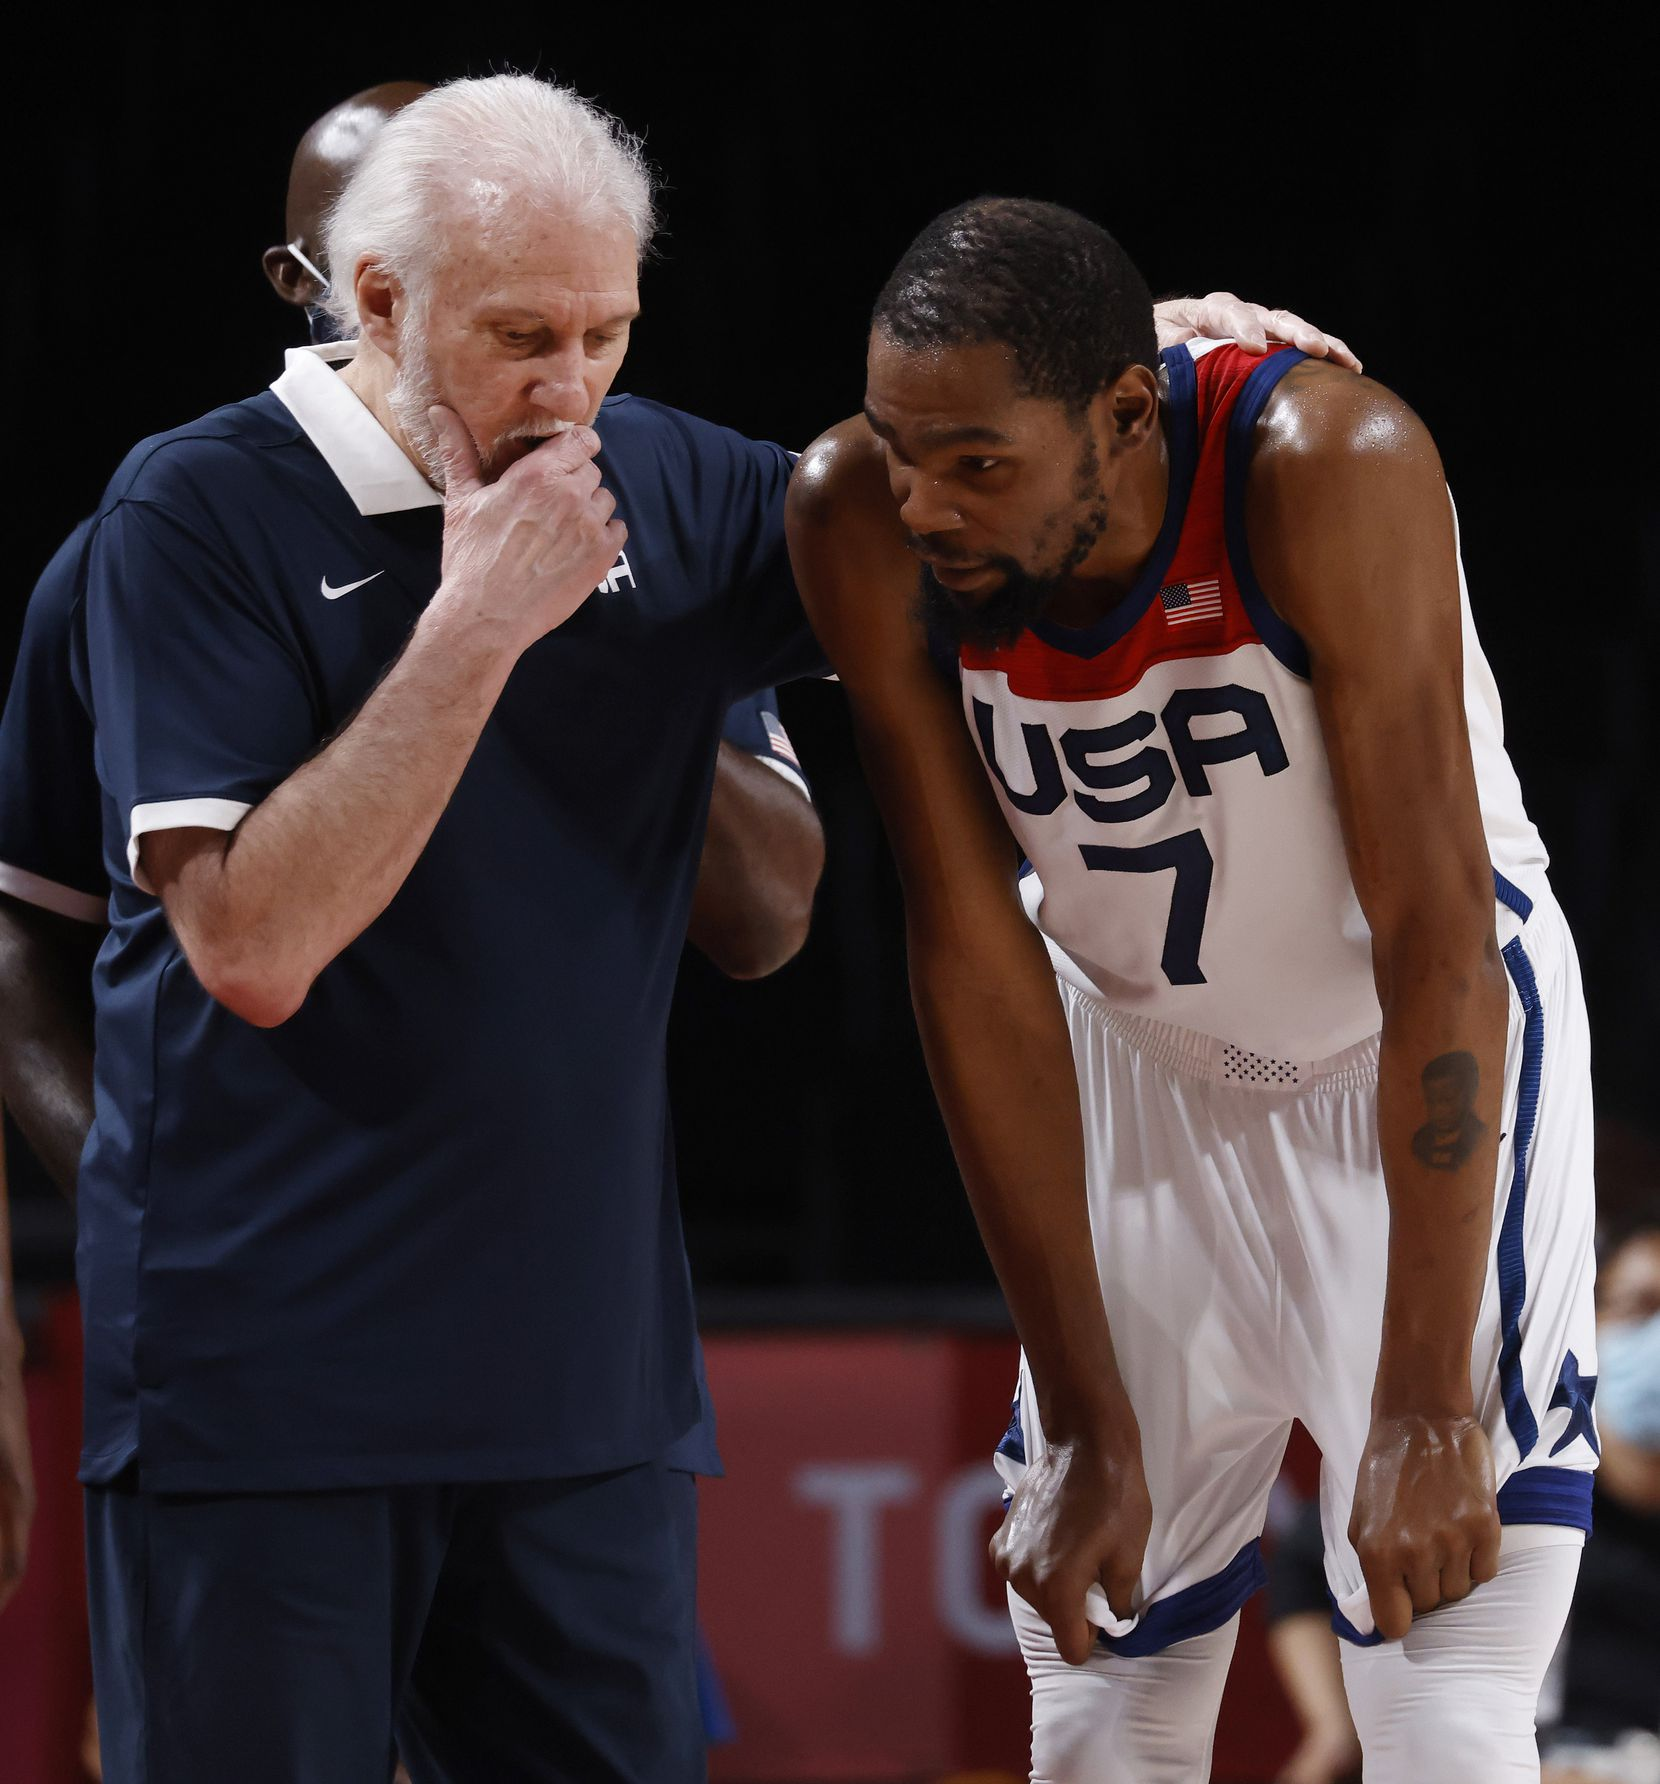 USA's head coach Gregg Popovich talks to Kevin Durant (7) during a break in play against Australia during the second half of a men's basketball semifinal at the postponed 2020 Tokyo Olympics at Saitama Super Arena, on Thursday, August 5, 2021, in Saitama, Japan. USA defeated Australia 97-78 to advance to the gold medal game. (Vernon Bryant/The Dallas Morning News)